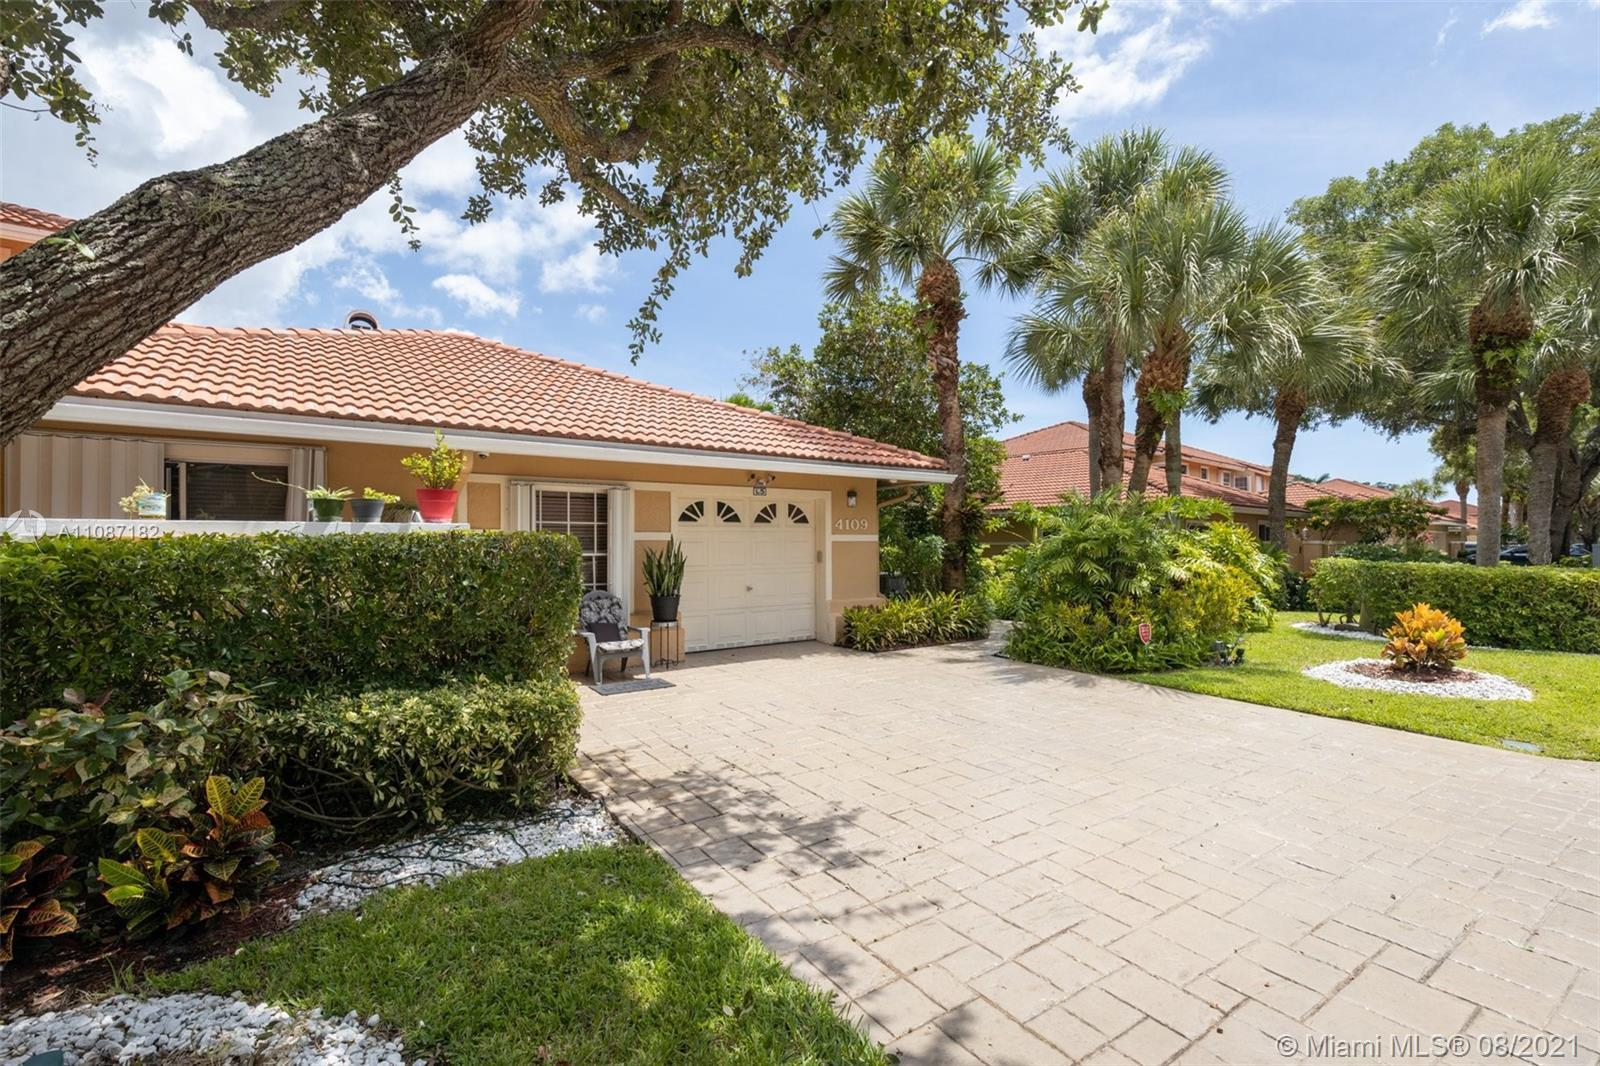 Welcome Home to your spacious tranquil oasis including you own private pool! You read that correctly